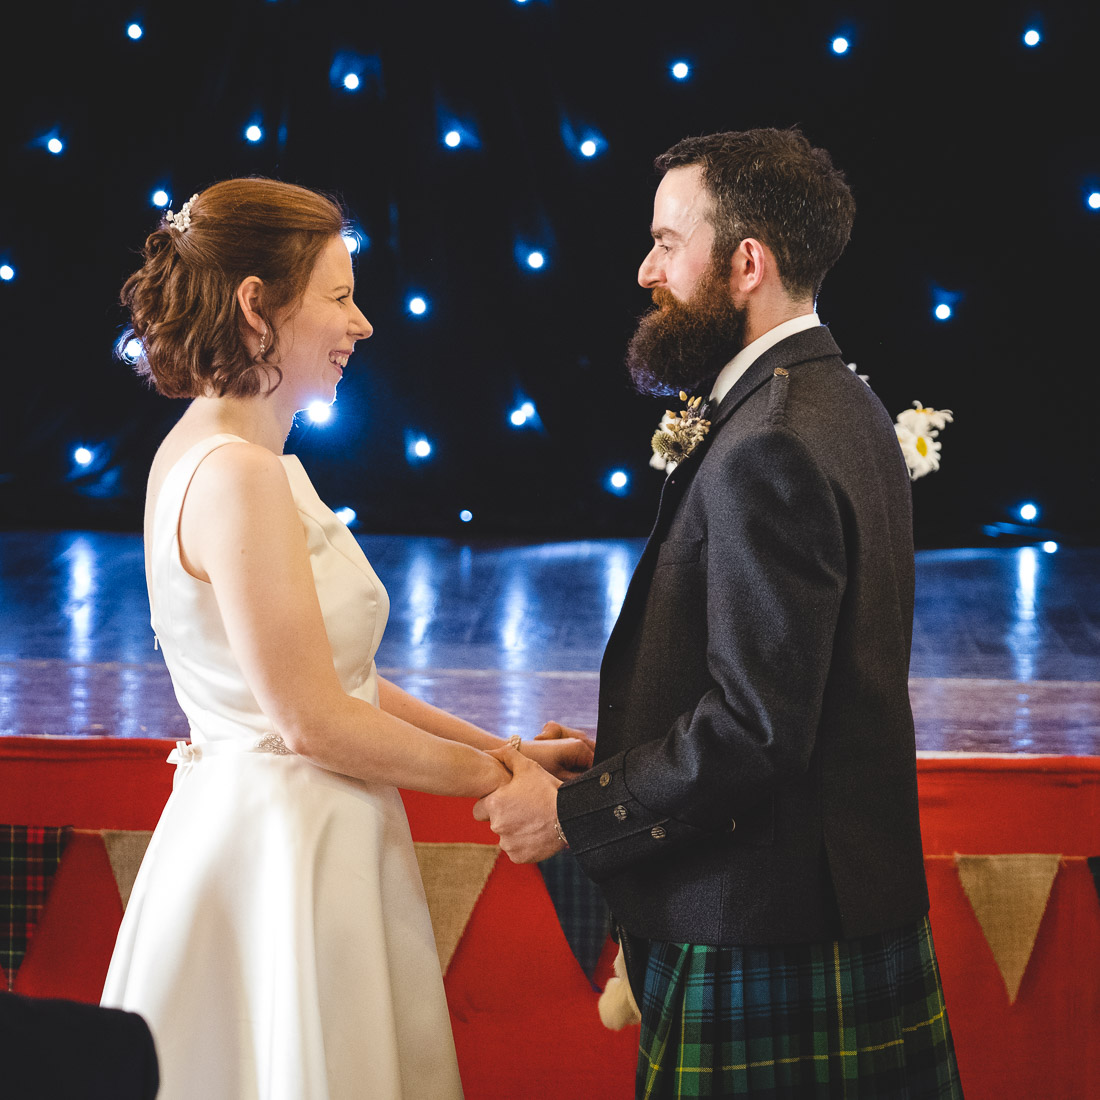 Crail Town Hall Wedding